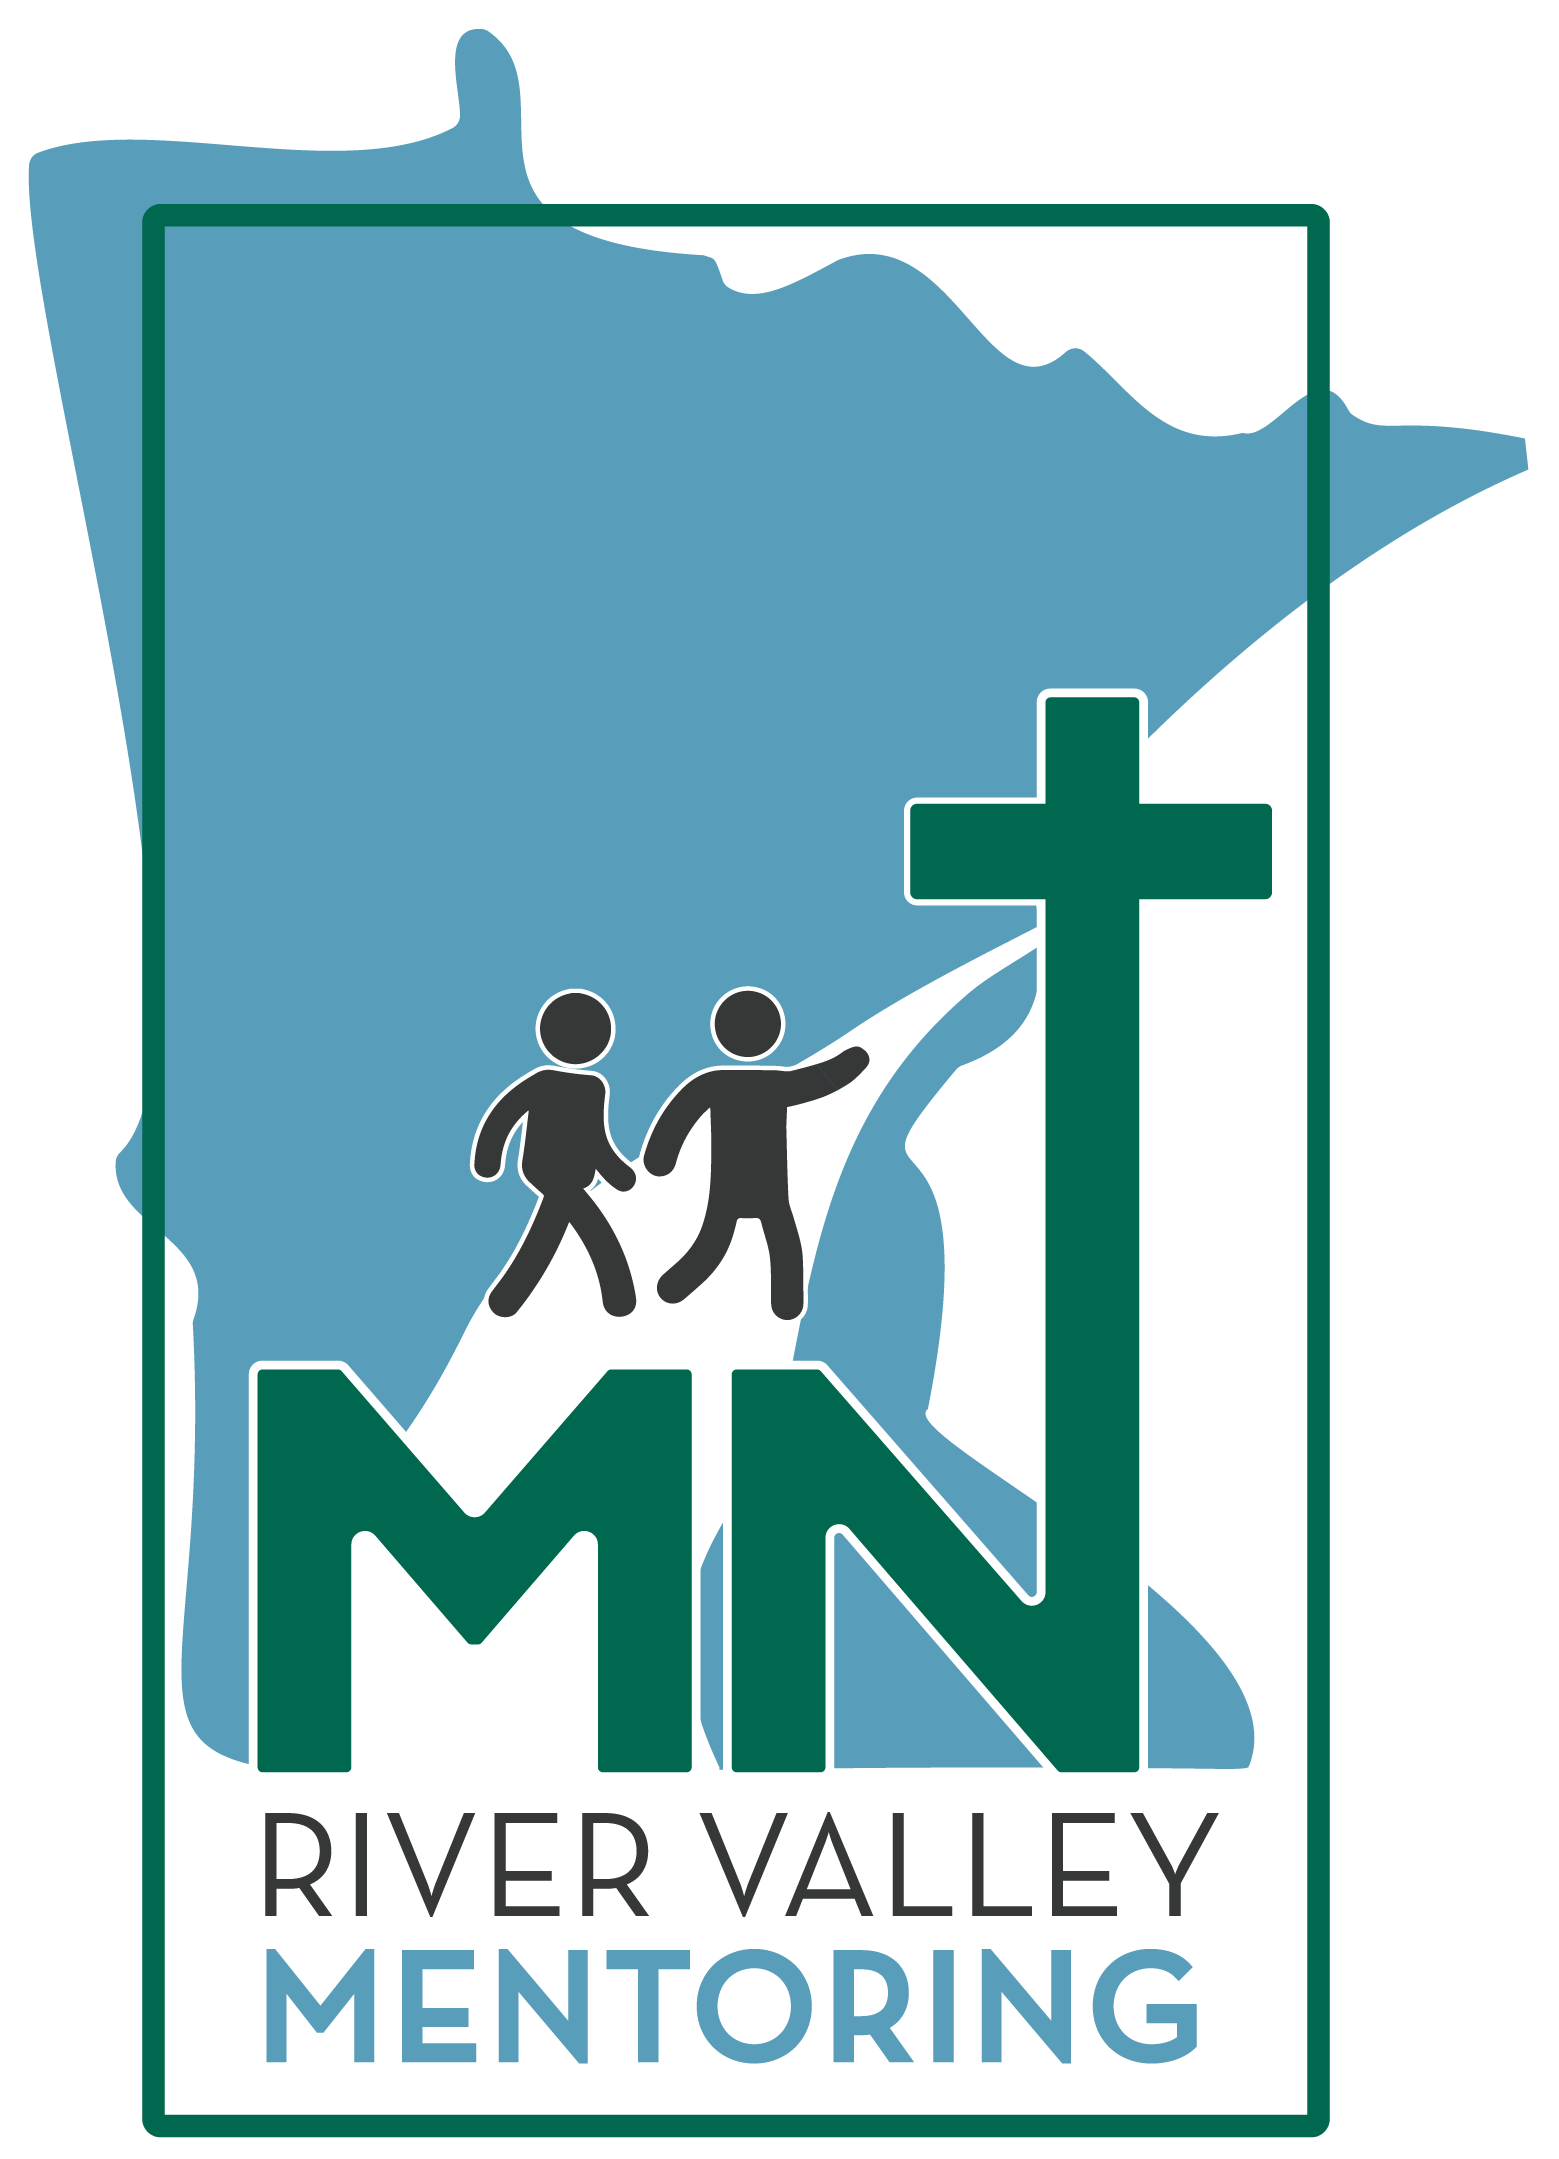 Minnesota River Valley Mentoring